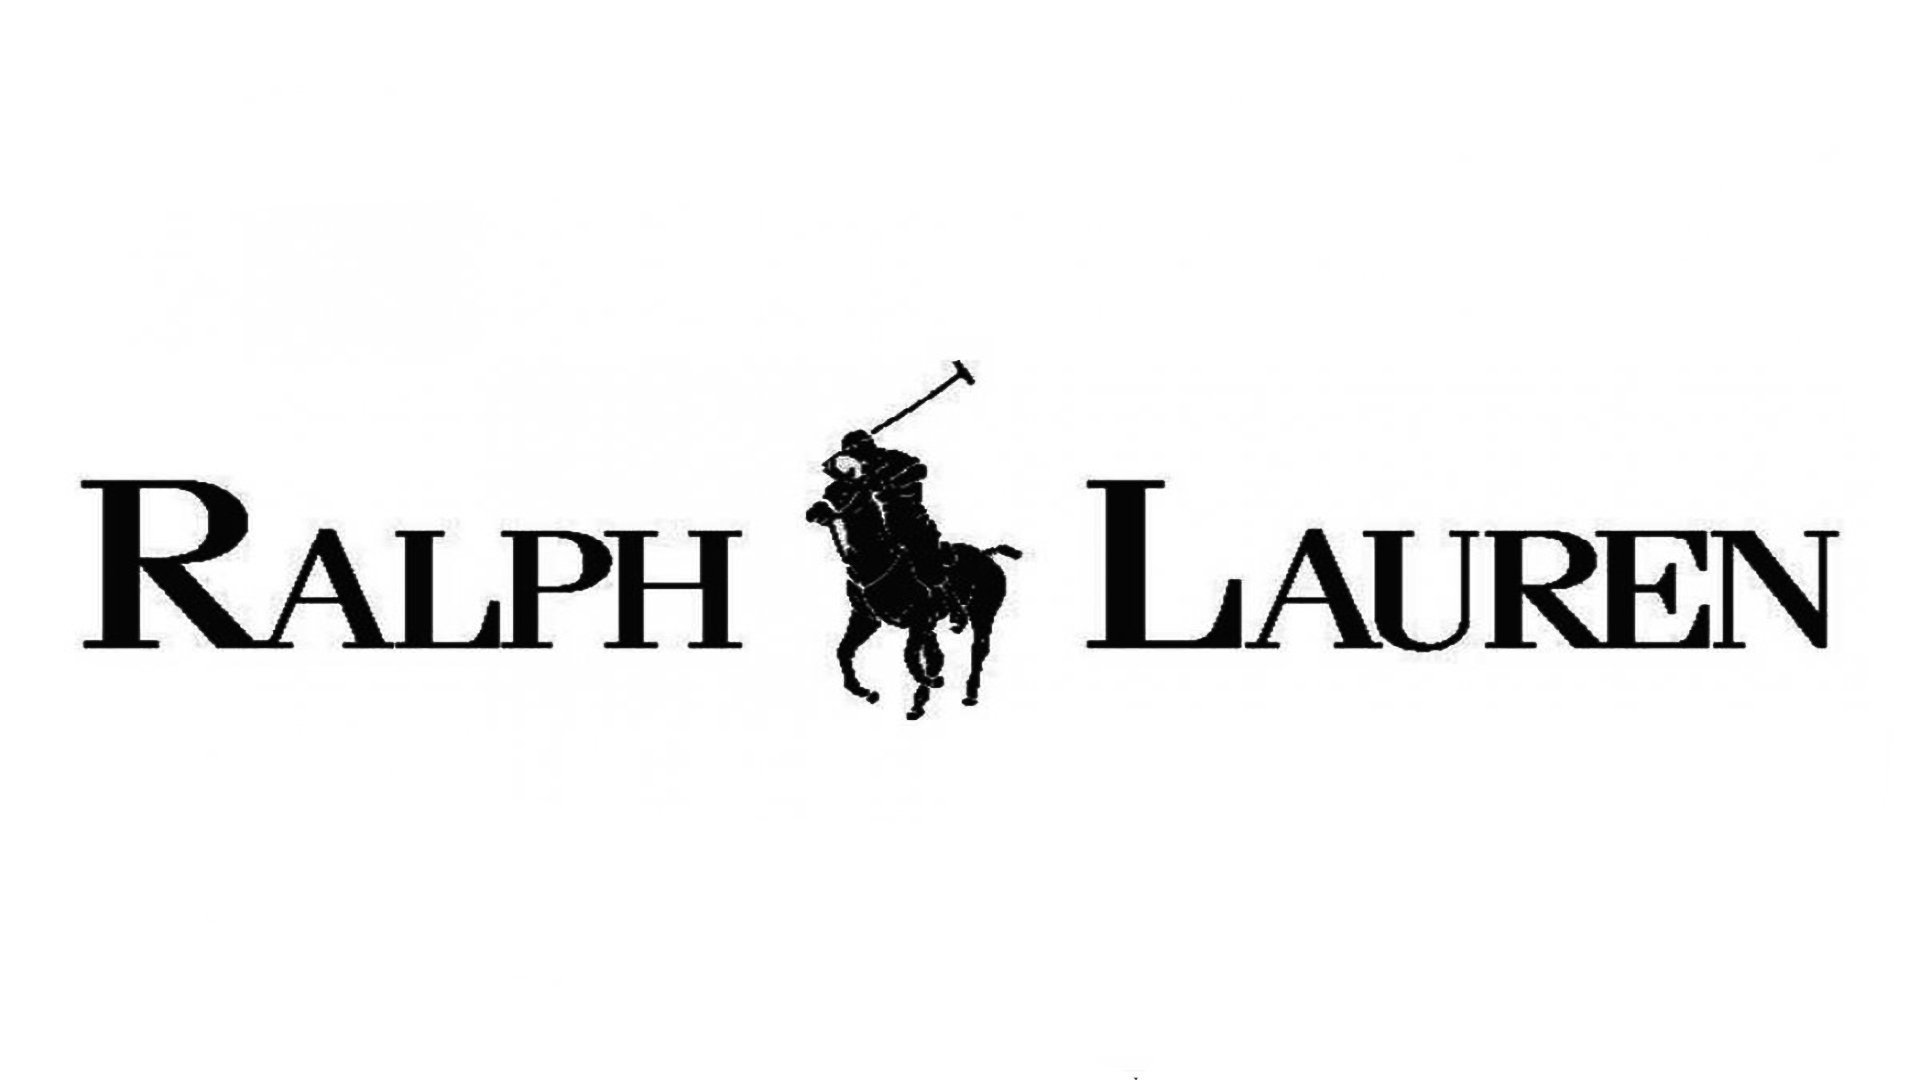 historia del logo de polo ralph lauren Belliard Construction 1920x1080